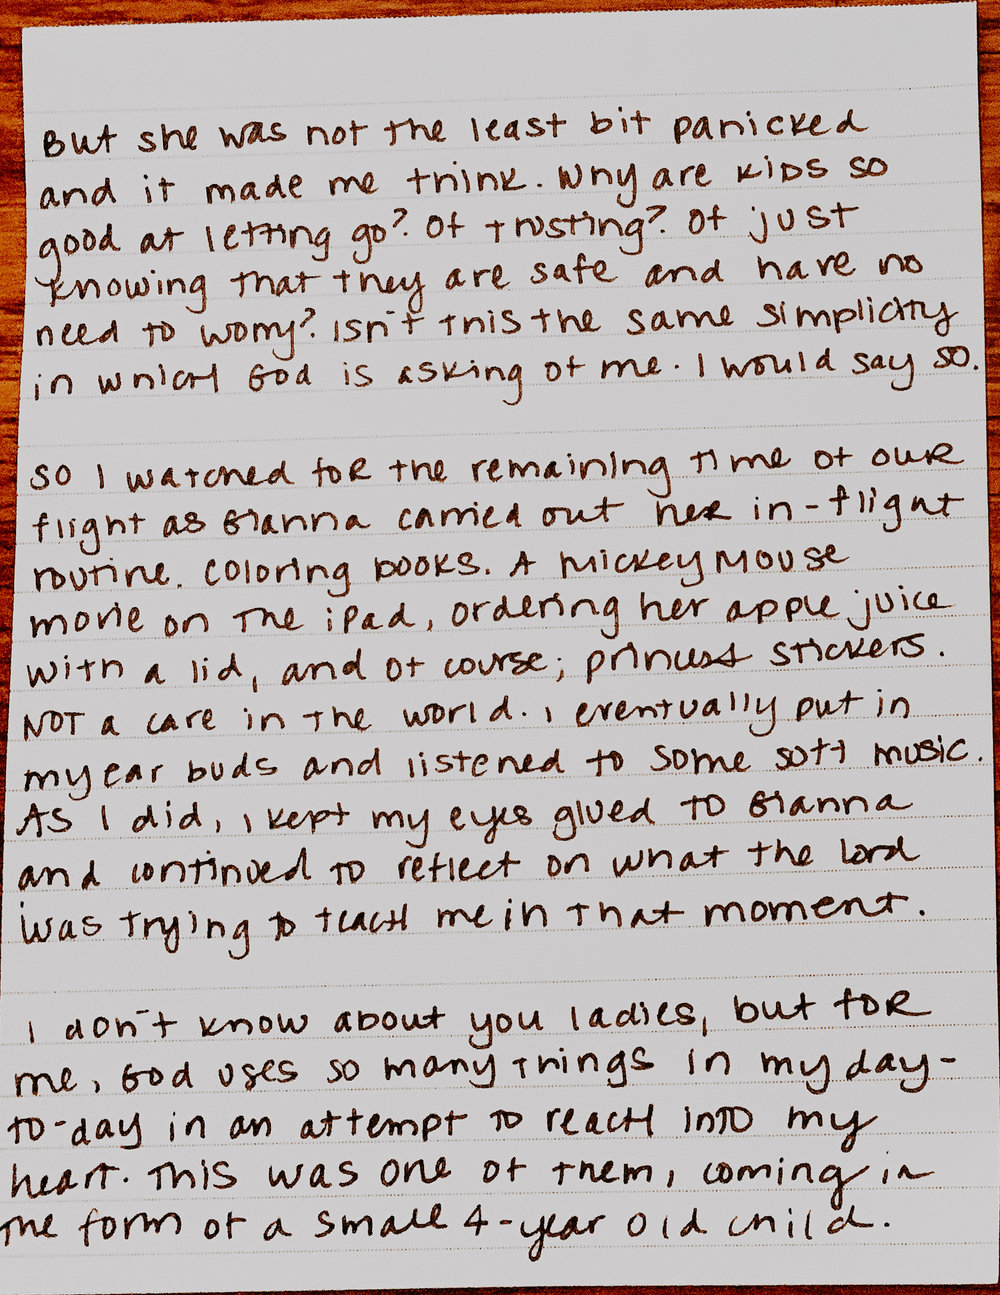 The-Catholic-Woman Letters-20.jpg